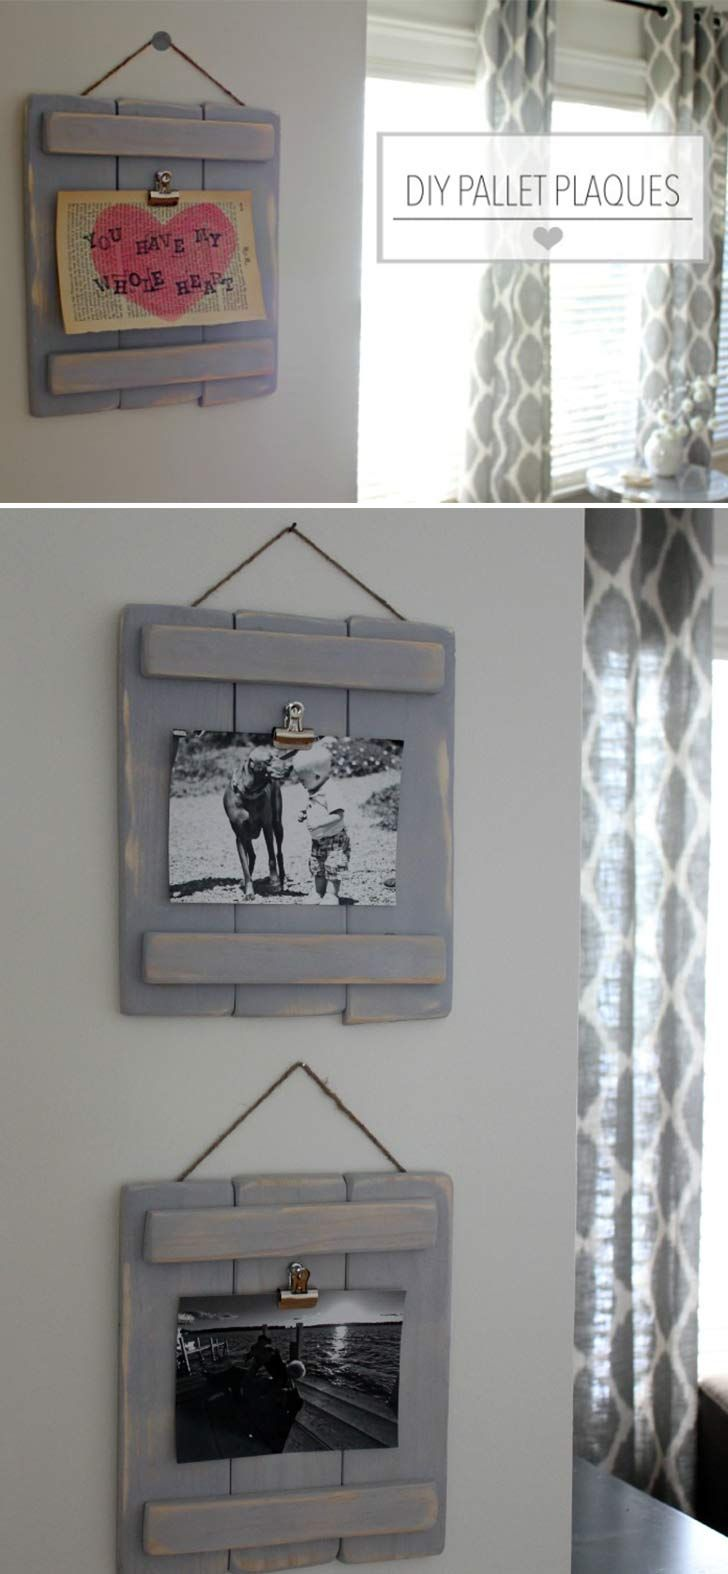 DIY Pallet Plaques. Click on image to see more home decor DIY ideas and designs.